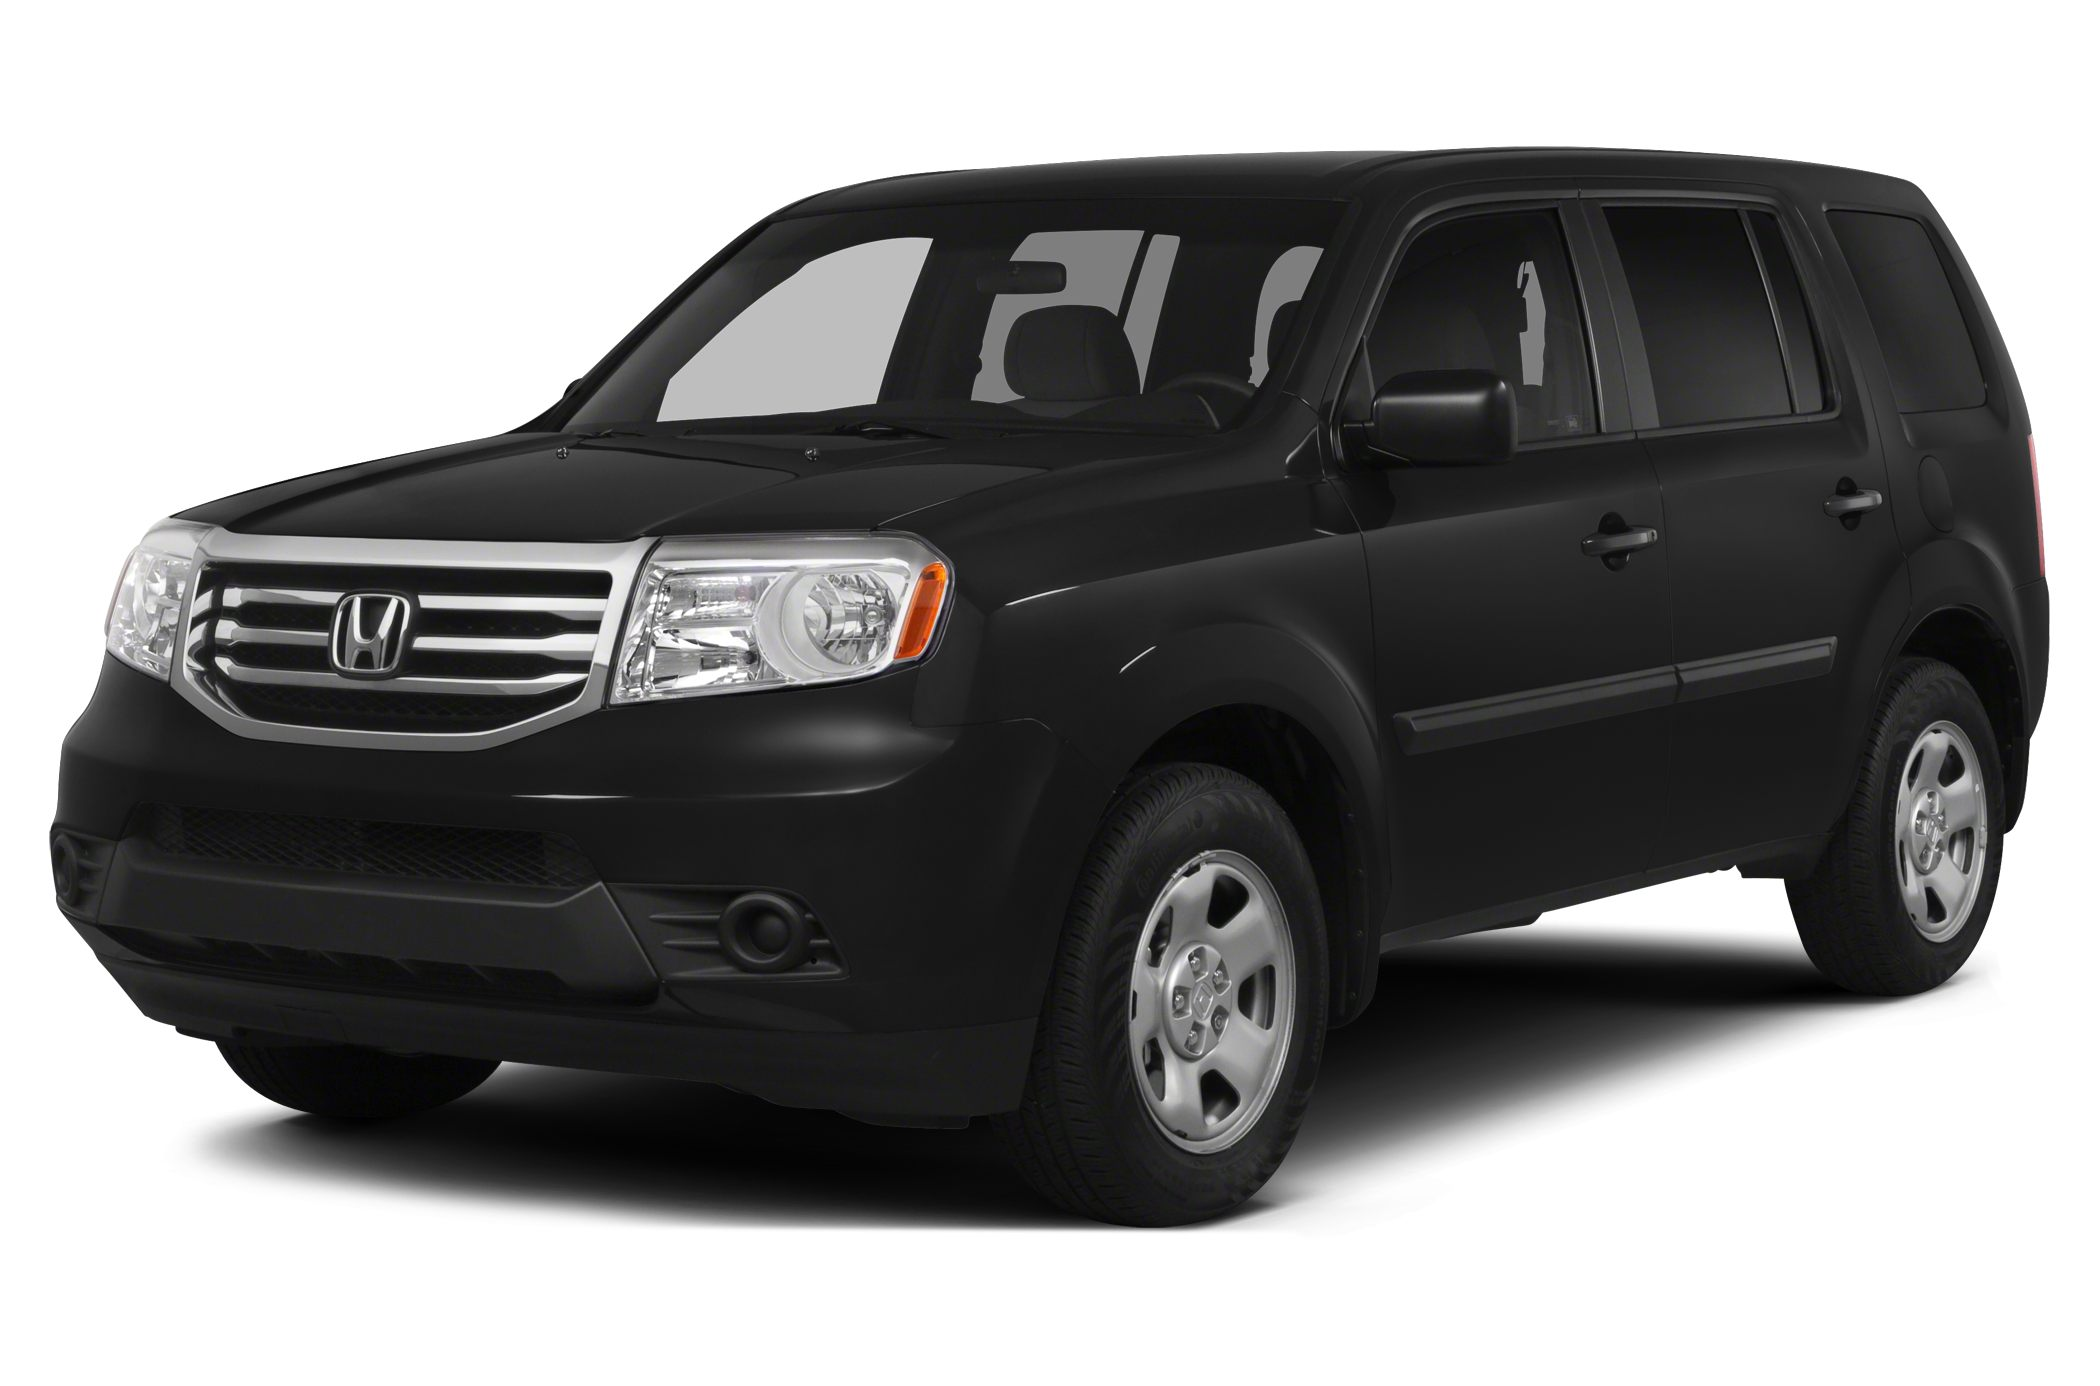 2015 Honda Pilot LX SUV for sale in Norwood for $29,658 with 4 miles